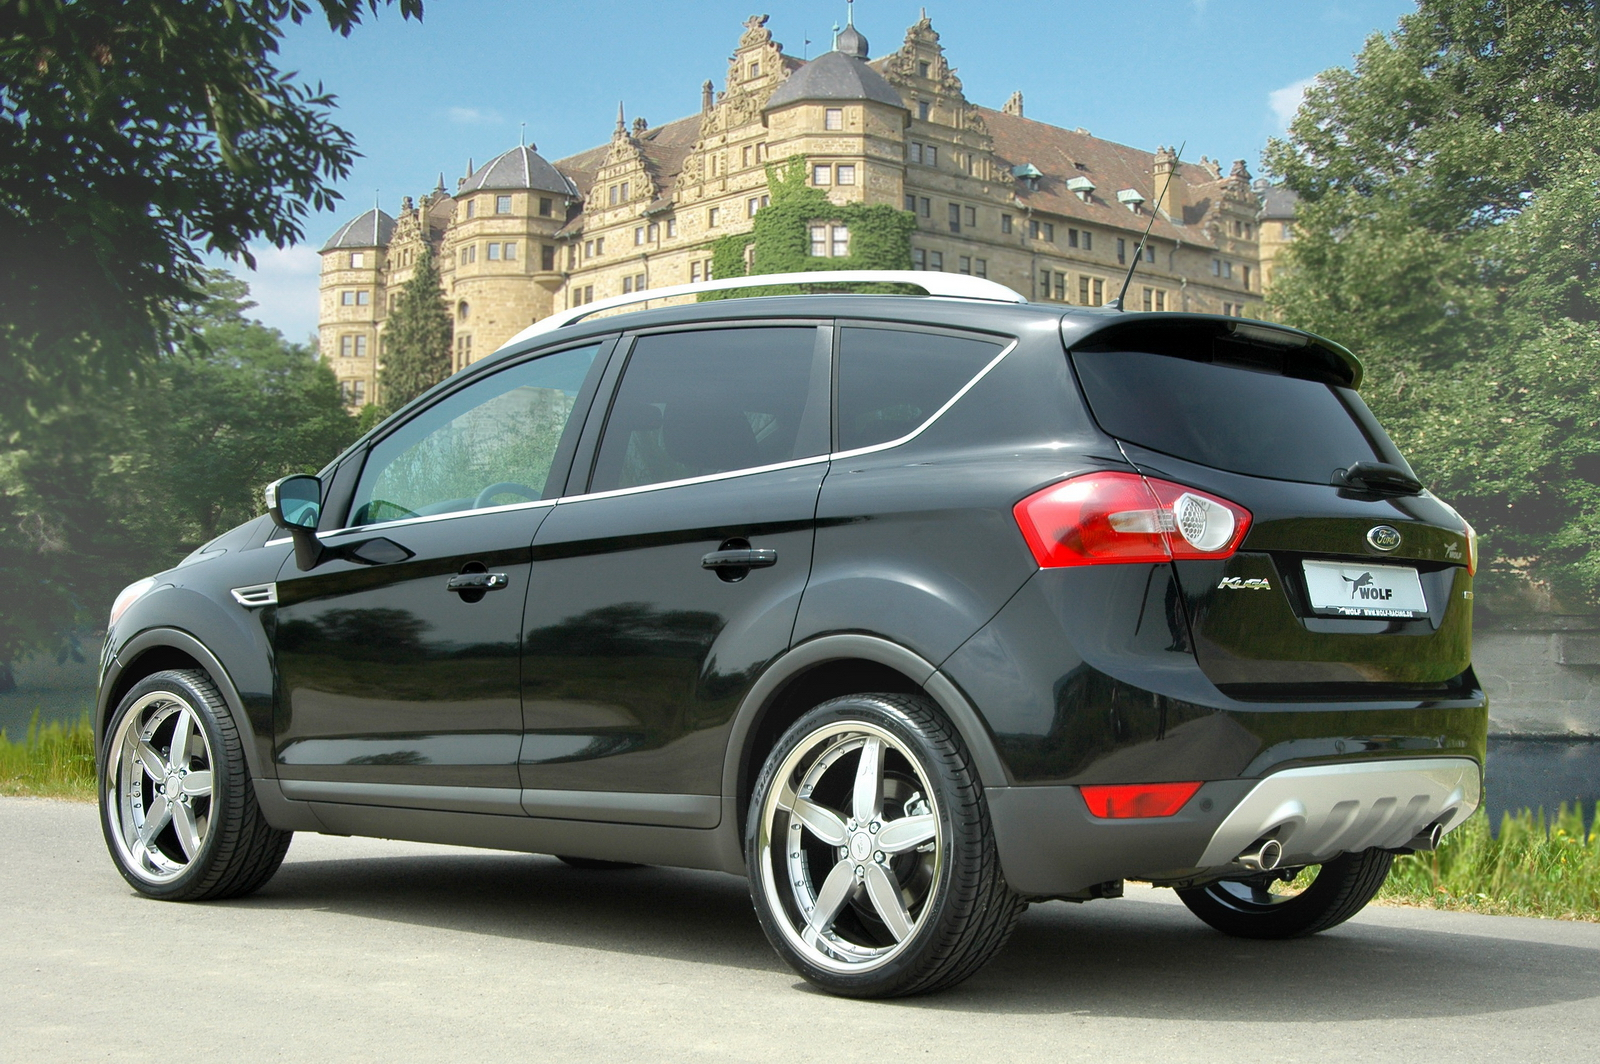 wolf modifies the new ford kuga car news. Black Bedroom Furniture Sets. Home Design Ideas